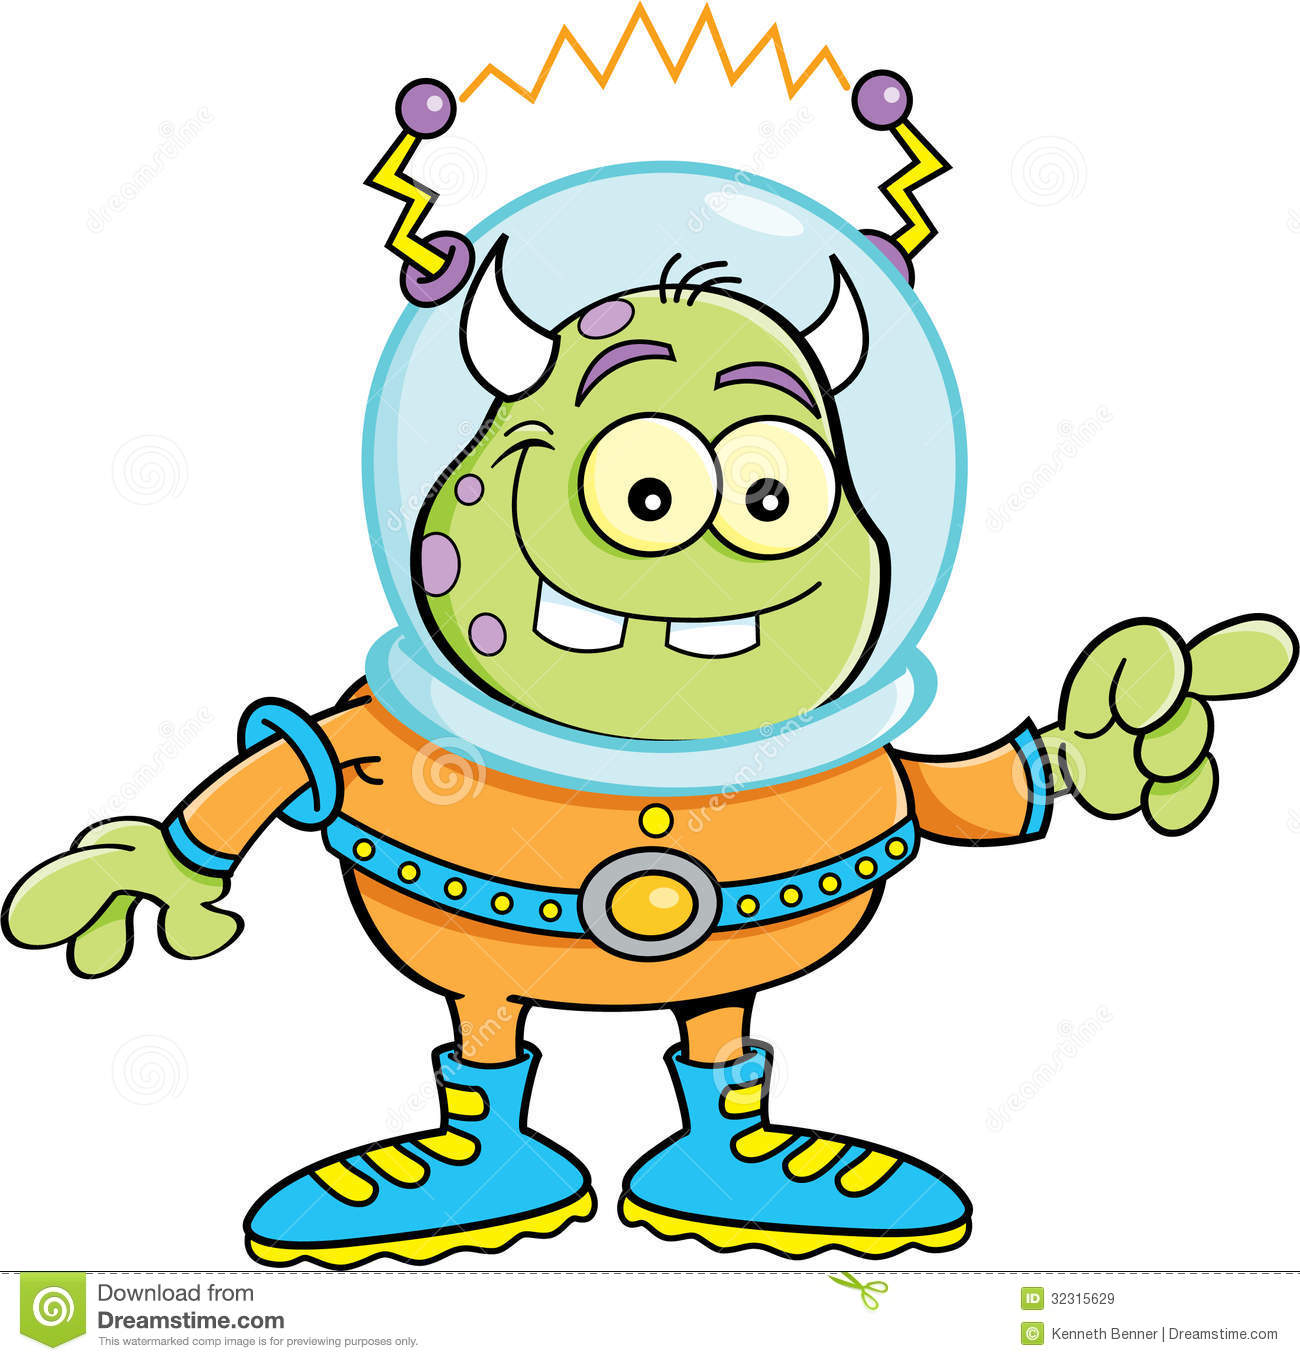 Cartoon Alien Pointing Royalty Free Stock Images - Image: 32315629